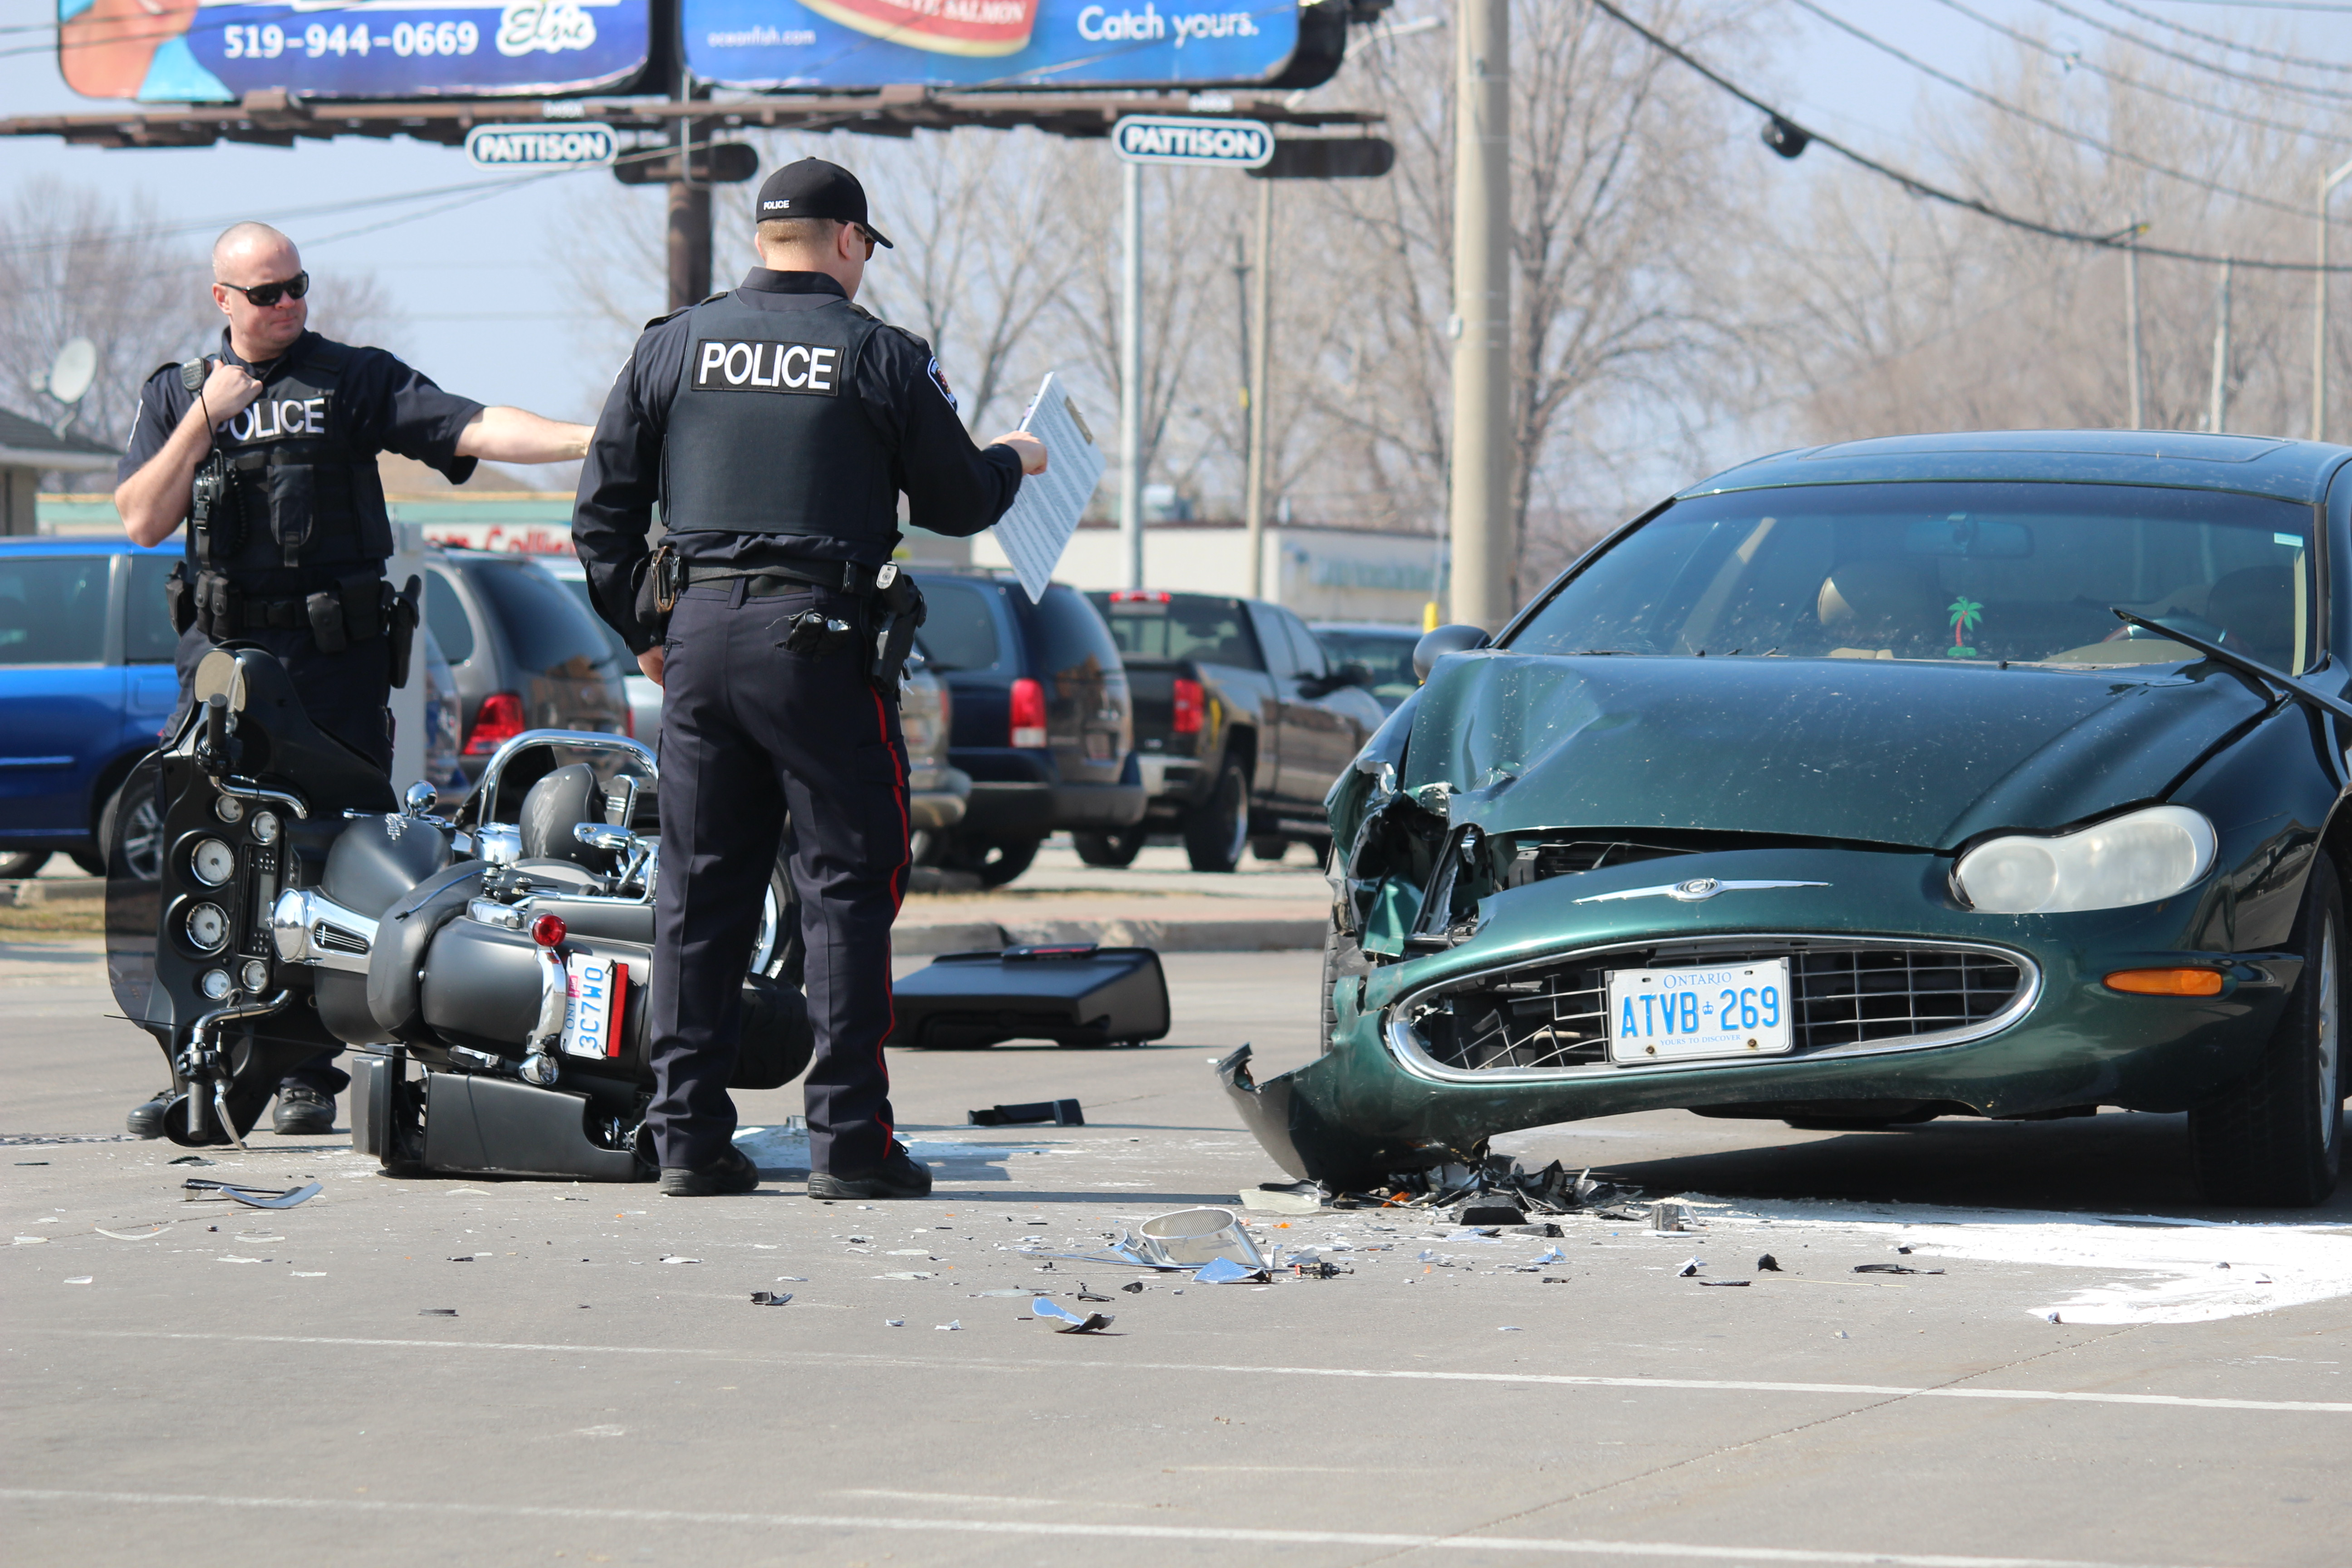 One person has been sent to hospital following a crash at the intersection of Lauzon Rd. and McHugh St., April 1, 2015. (Photo by Jason Viau)